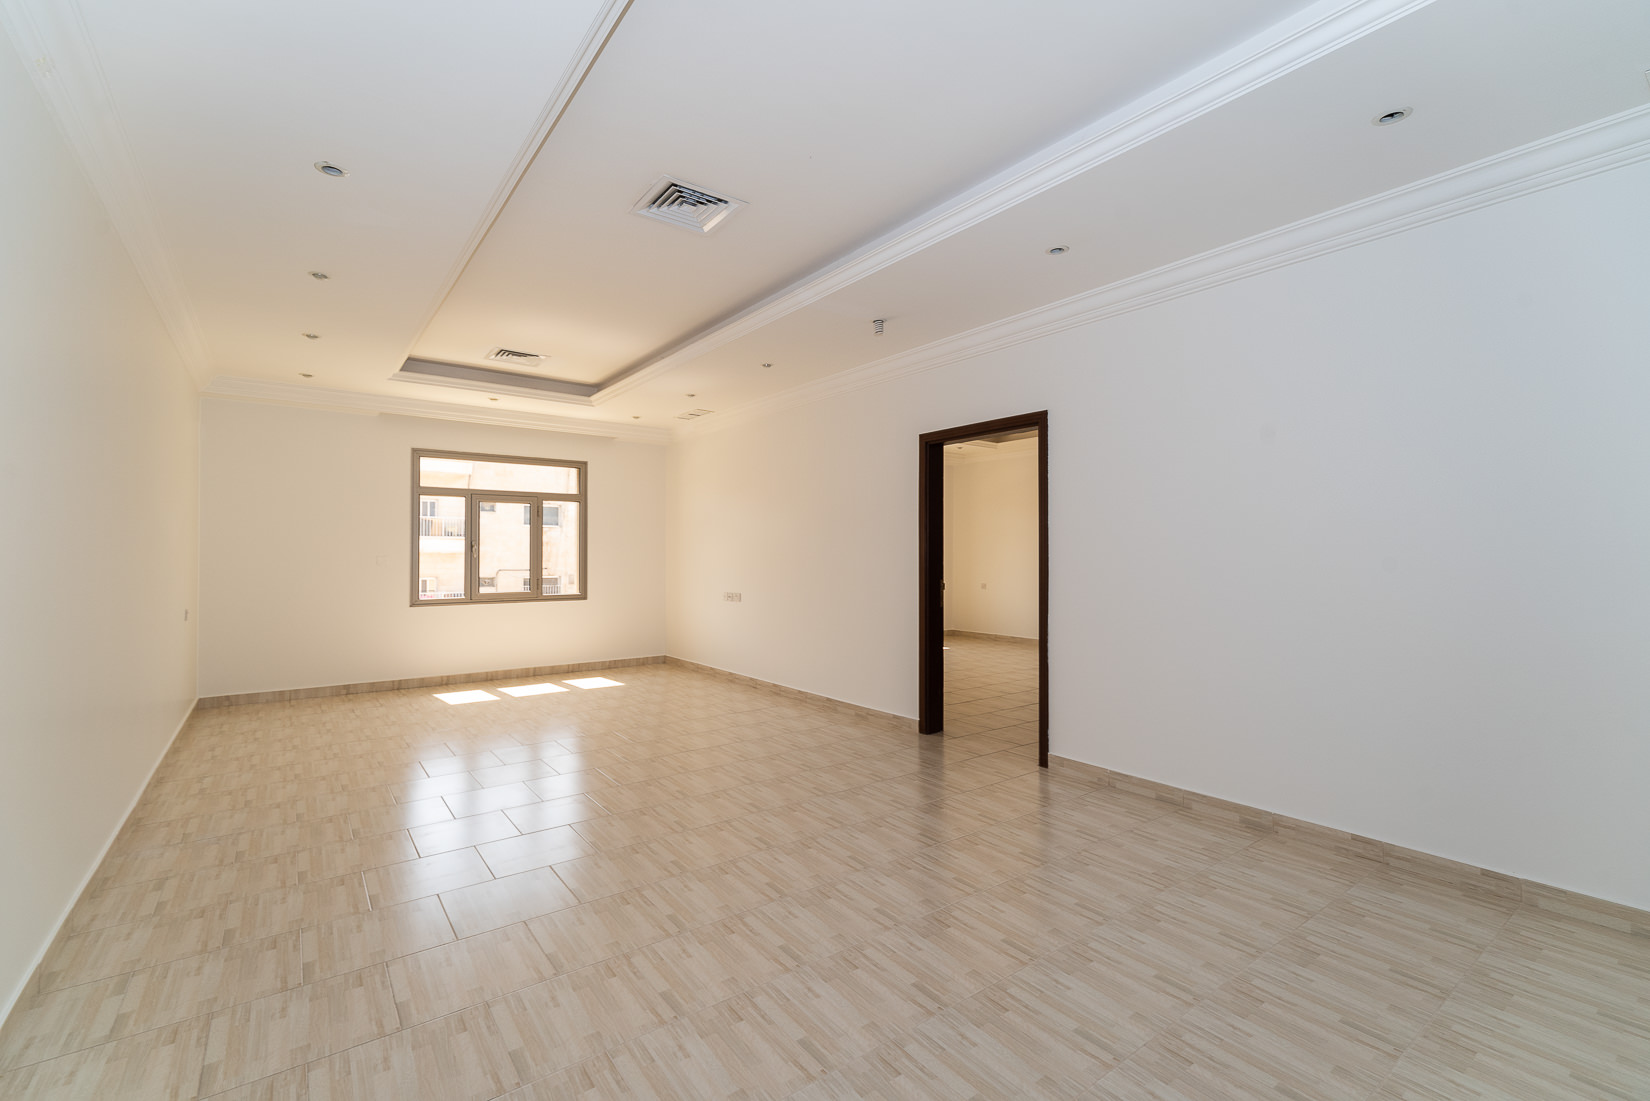 Salwa – spacious, unfurnished, three bedroom apartment